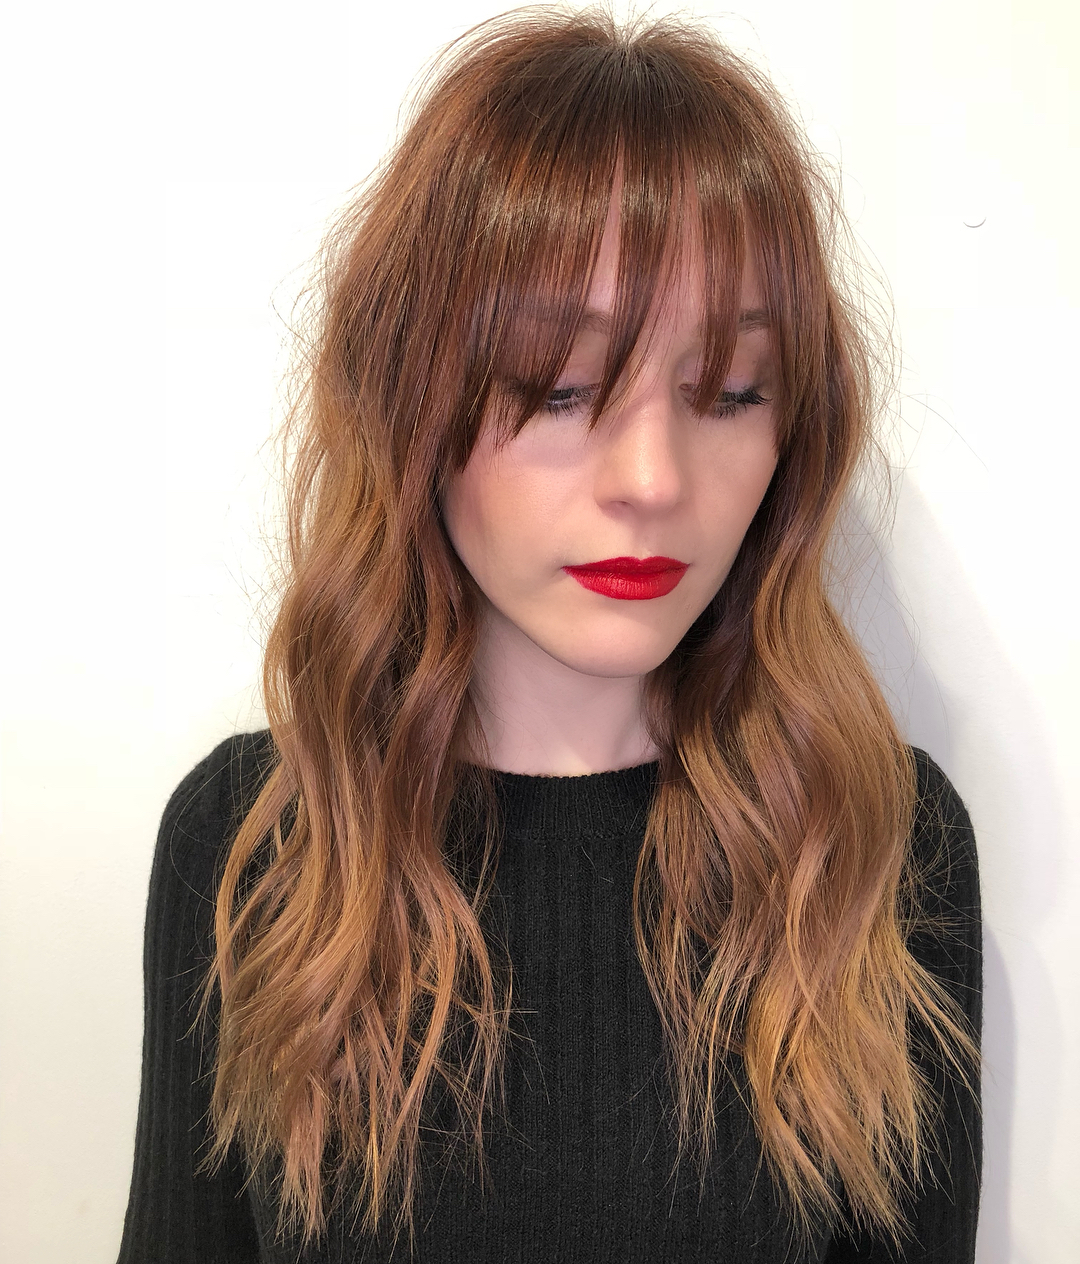 Wavy Red Hairstyle with Long Bangs